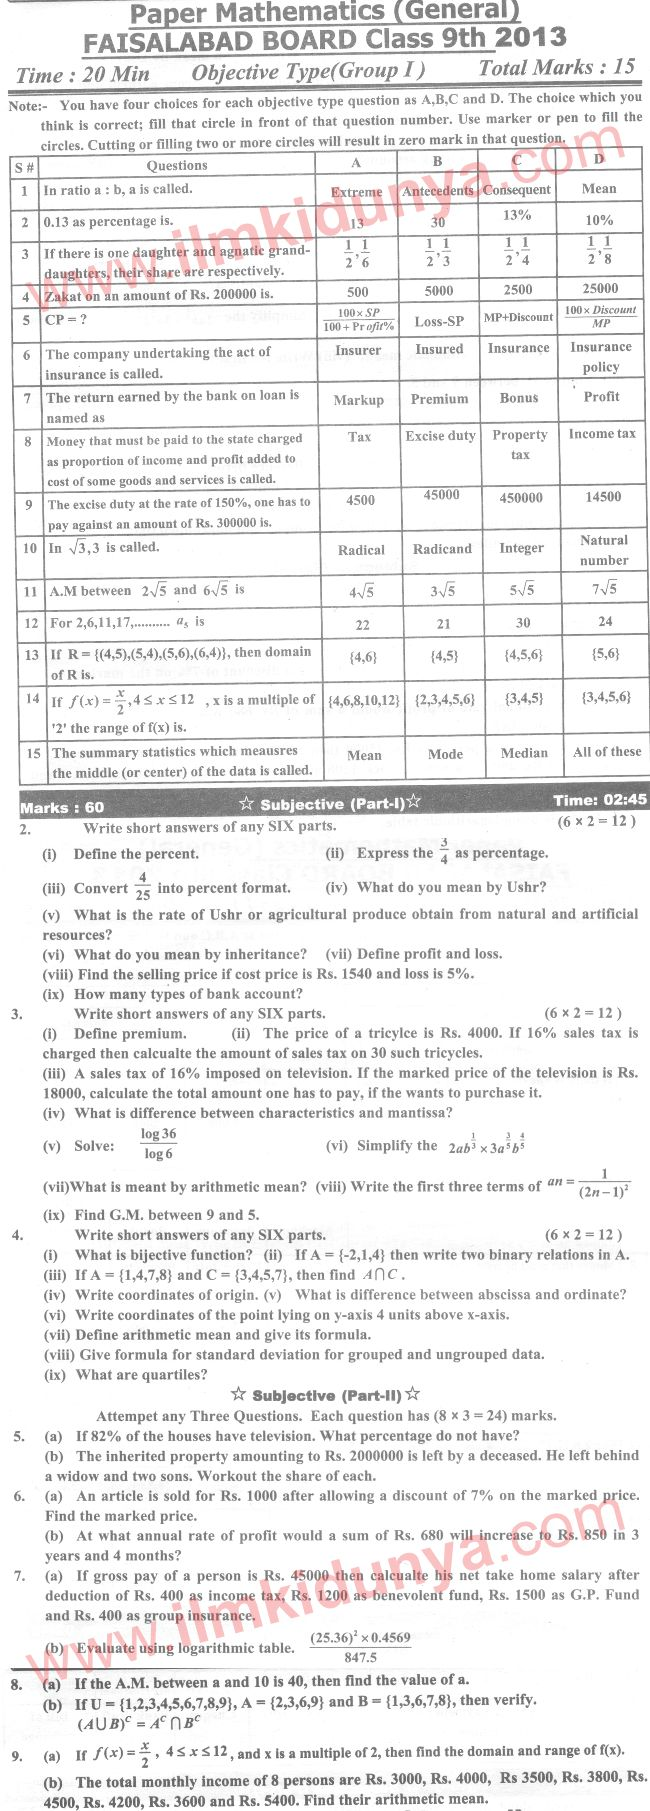 Past Papers 2013 Faisalabad Board 9th Class General Math